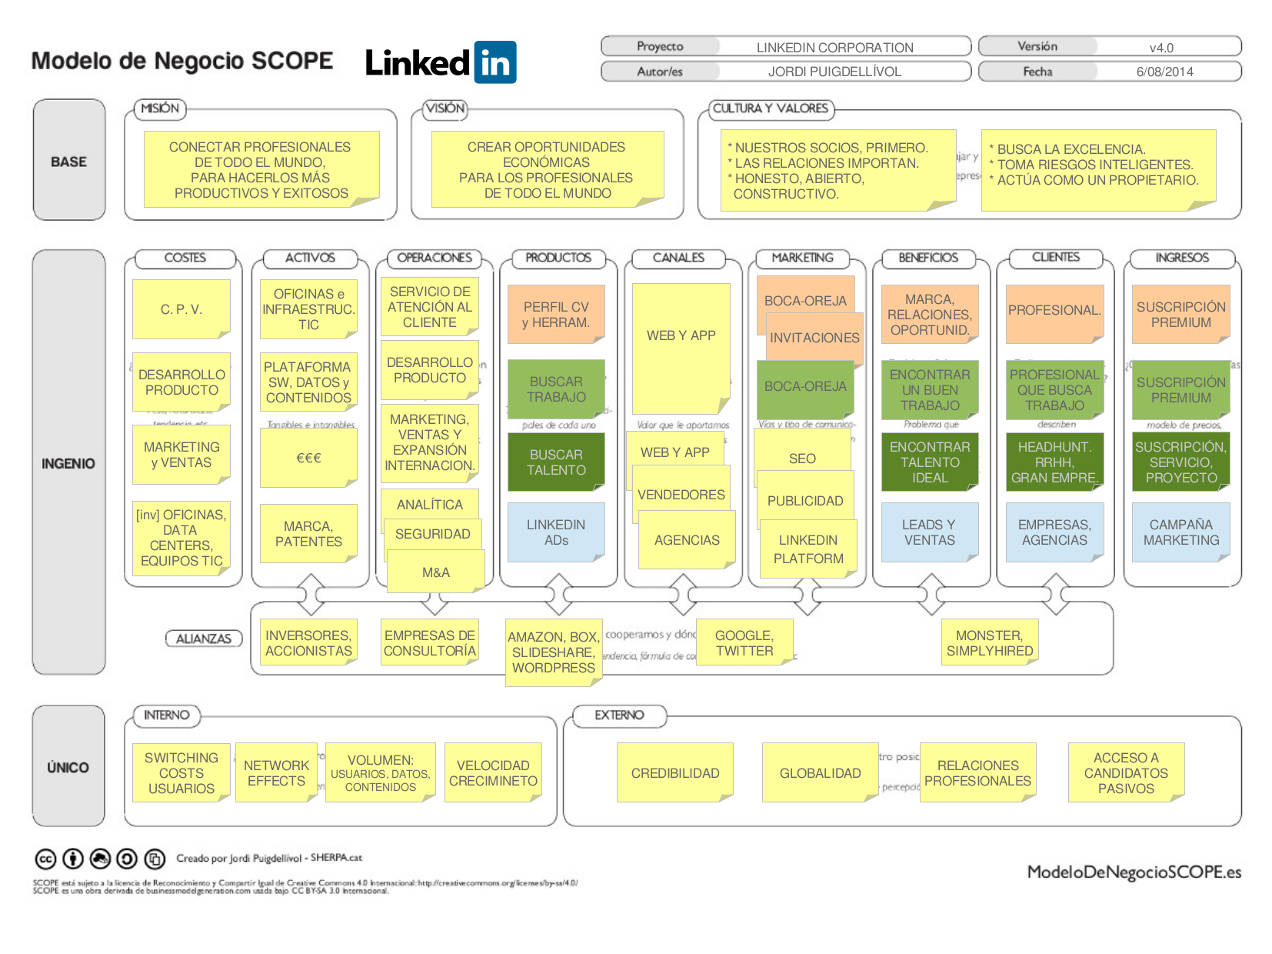 Linkedin - Modelo de Negocio SCOPE